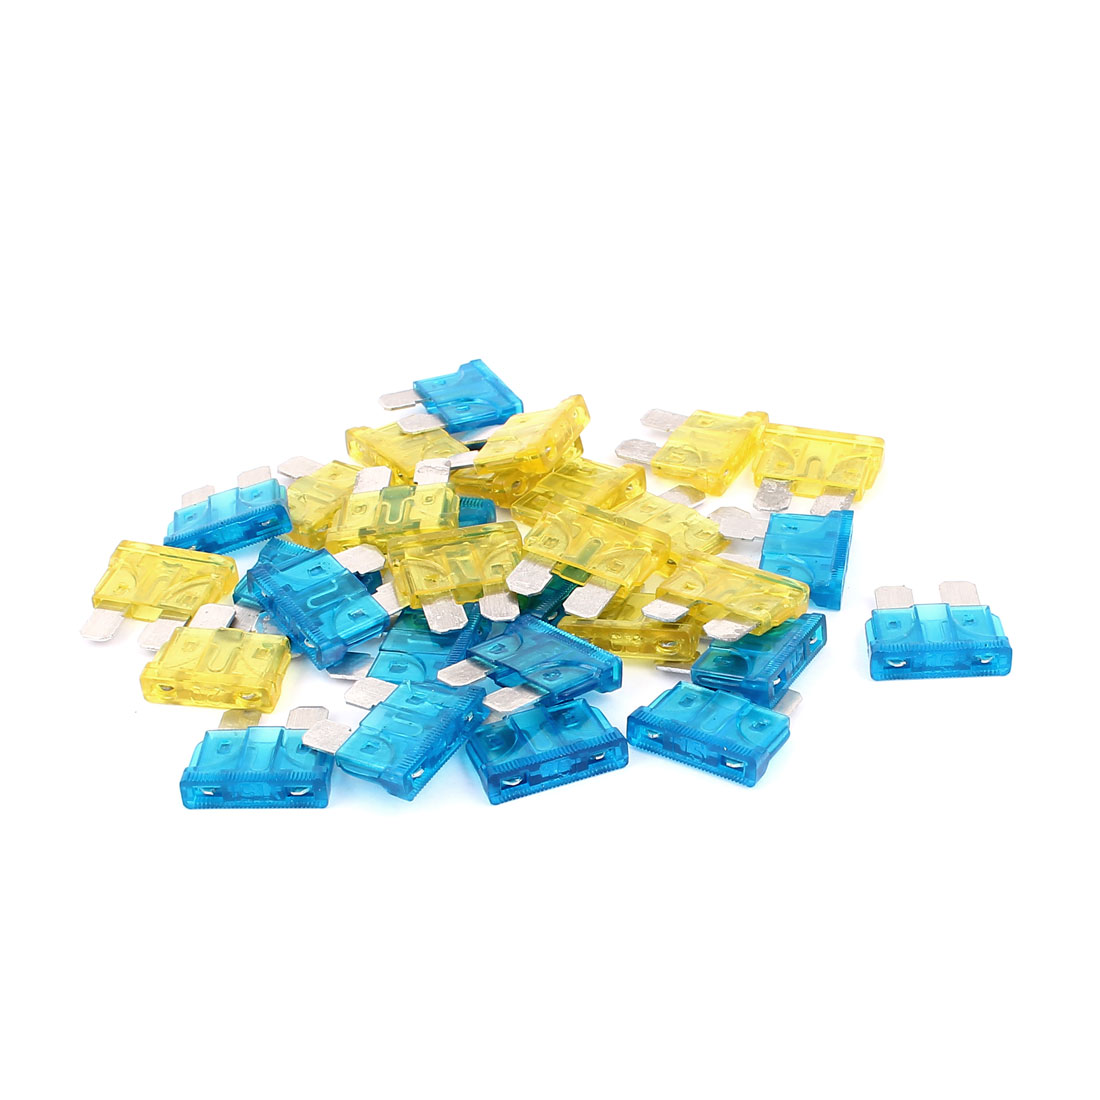 30pcs 15A 20A Auto Car Vehicle Boat Motorcycle ATC ATO Mini Blade Fuse Blue Yellow